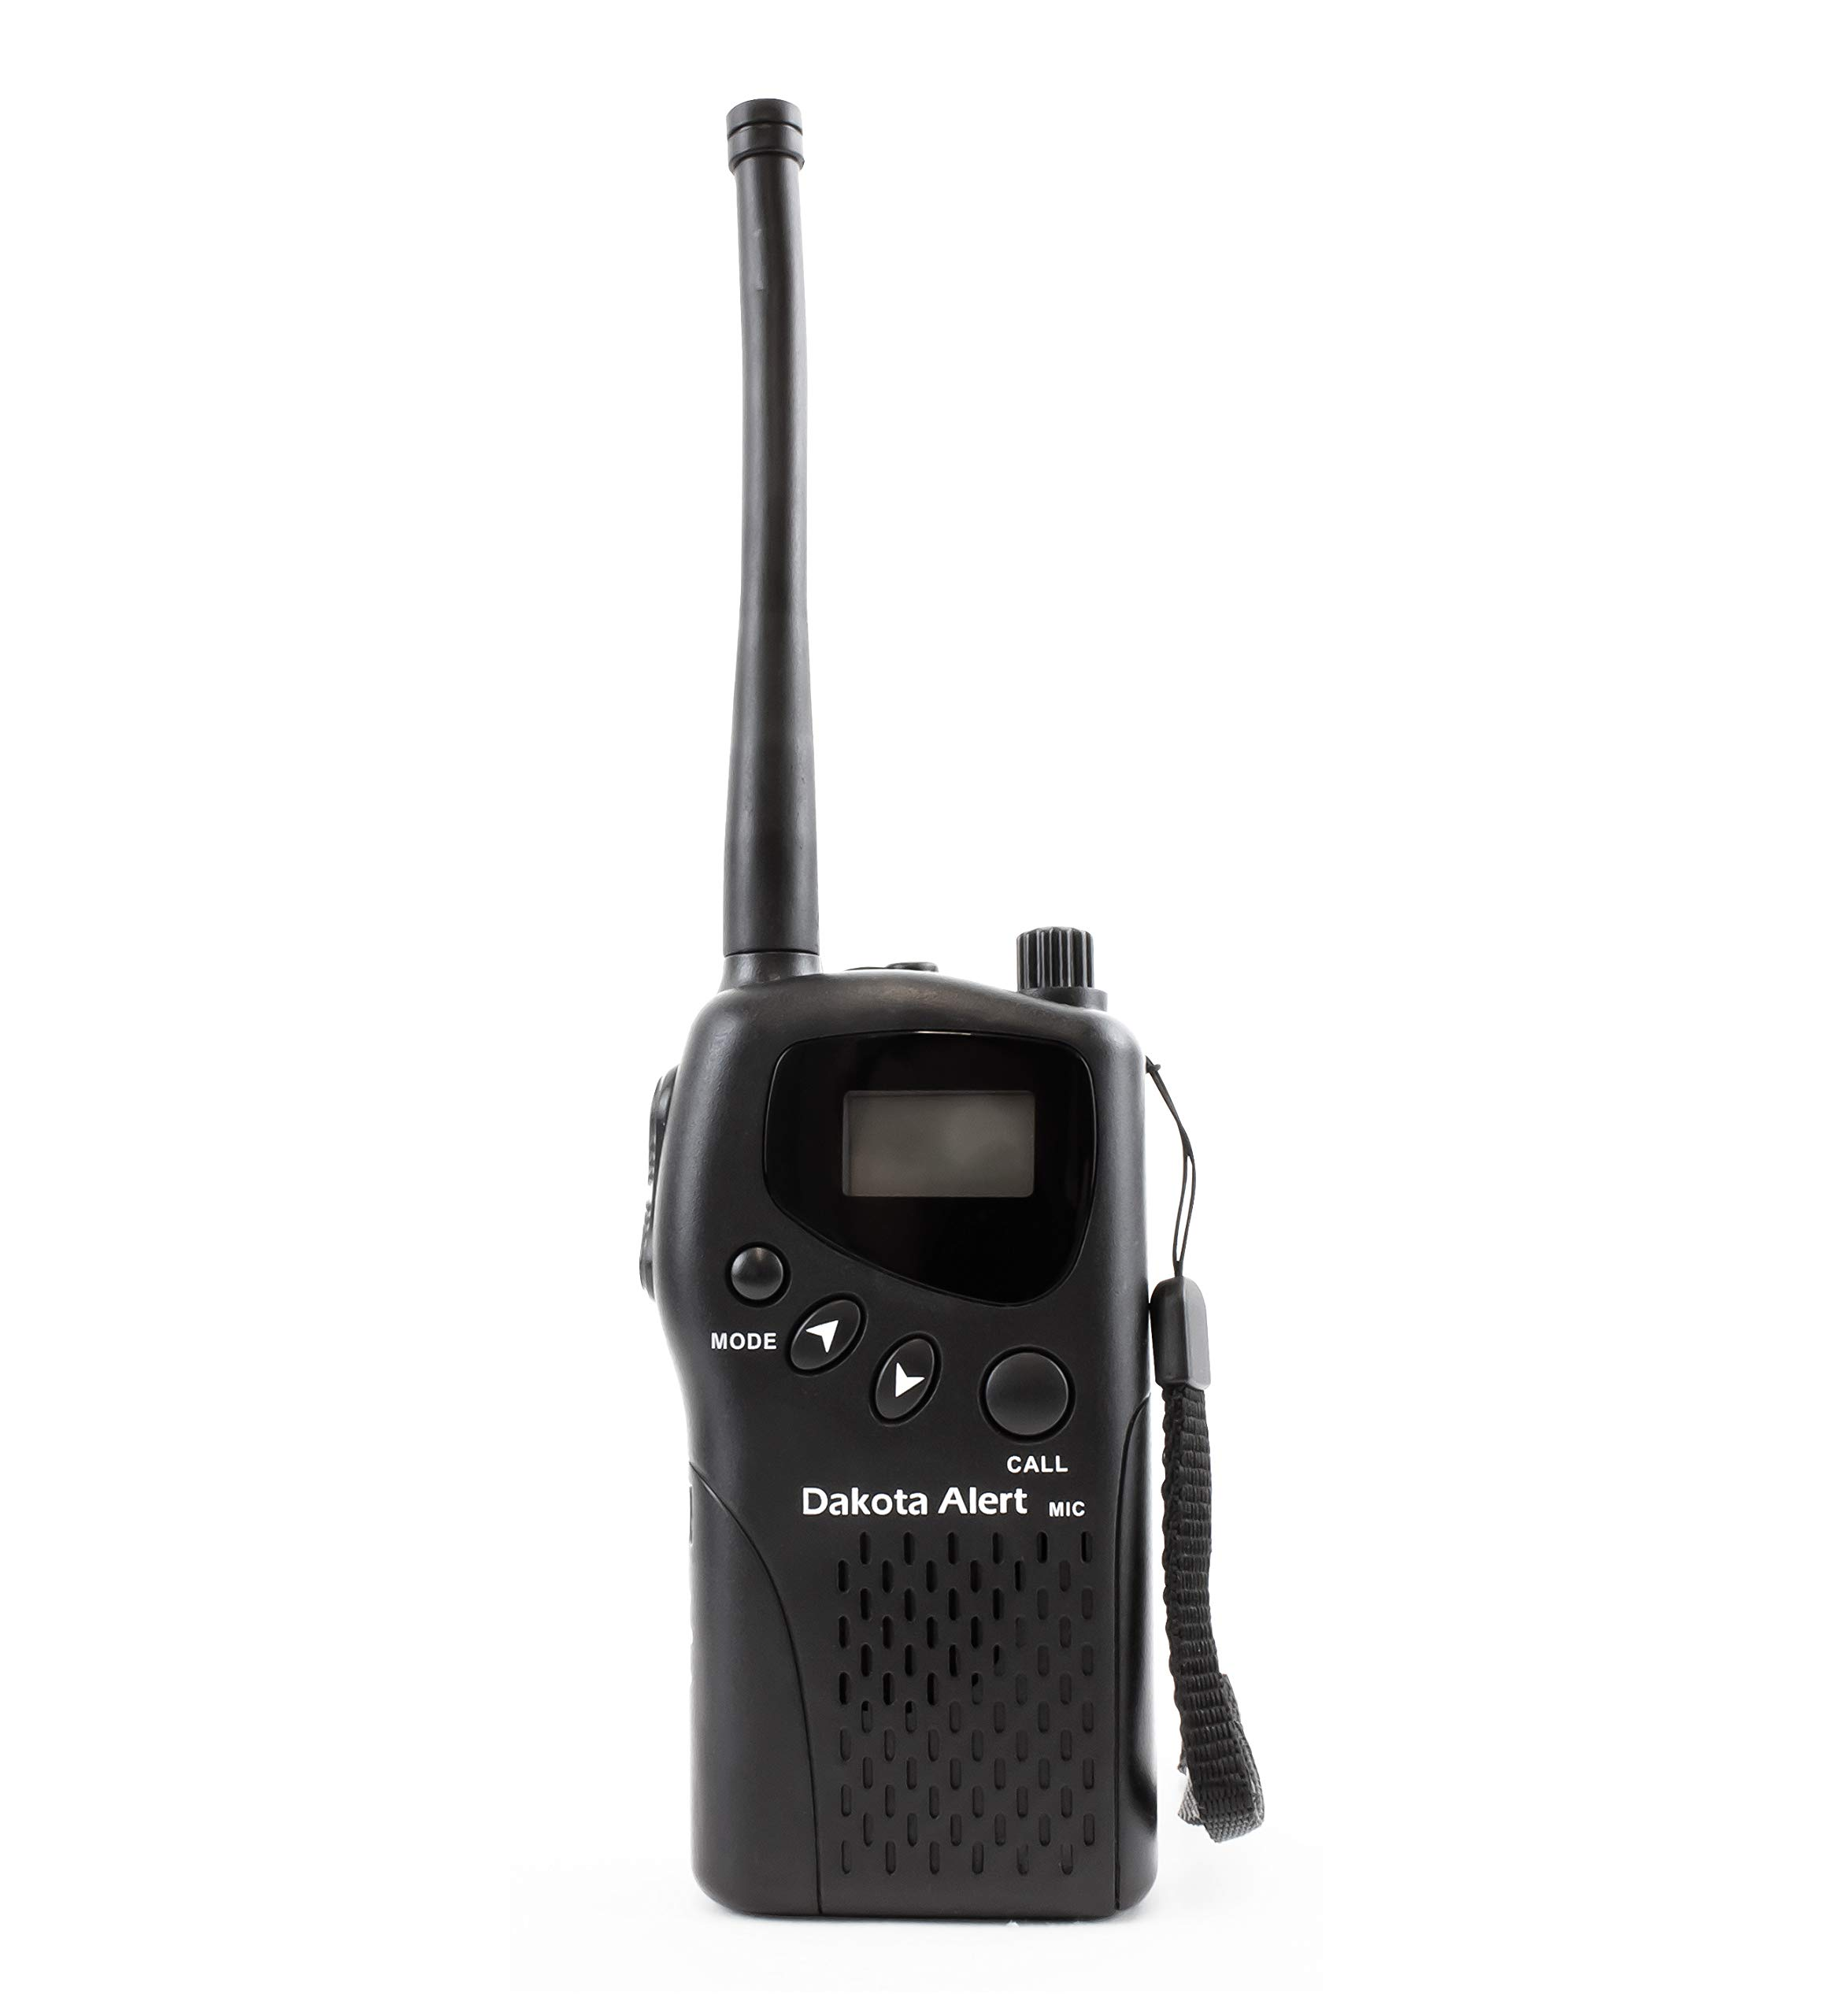 Dakota Alert M538-HT MURS Wireless VHF Transceiver - Handheld 2-Way Radio License Free - Multi Use Radio Service